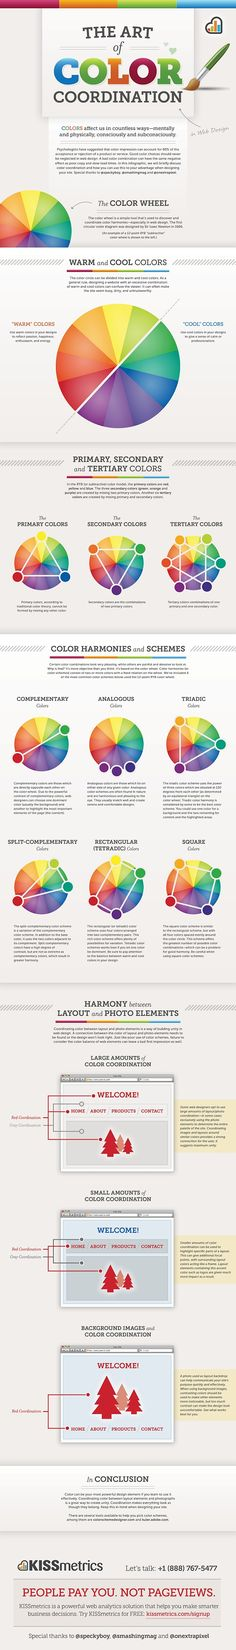 Colour Guide - Very Interesting